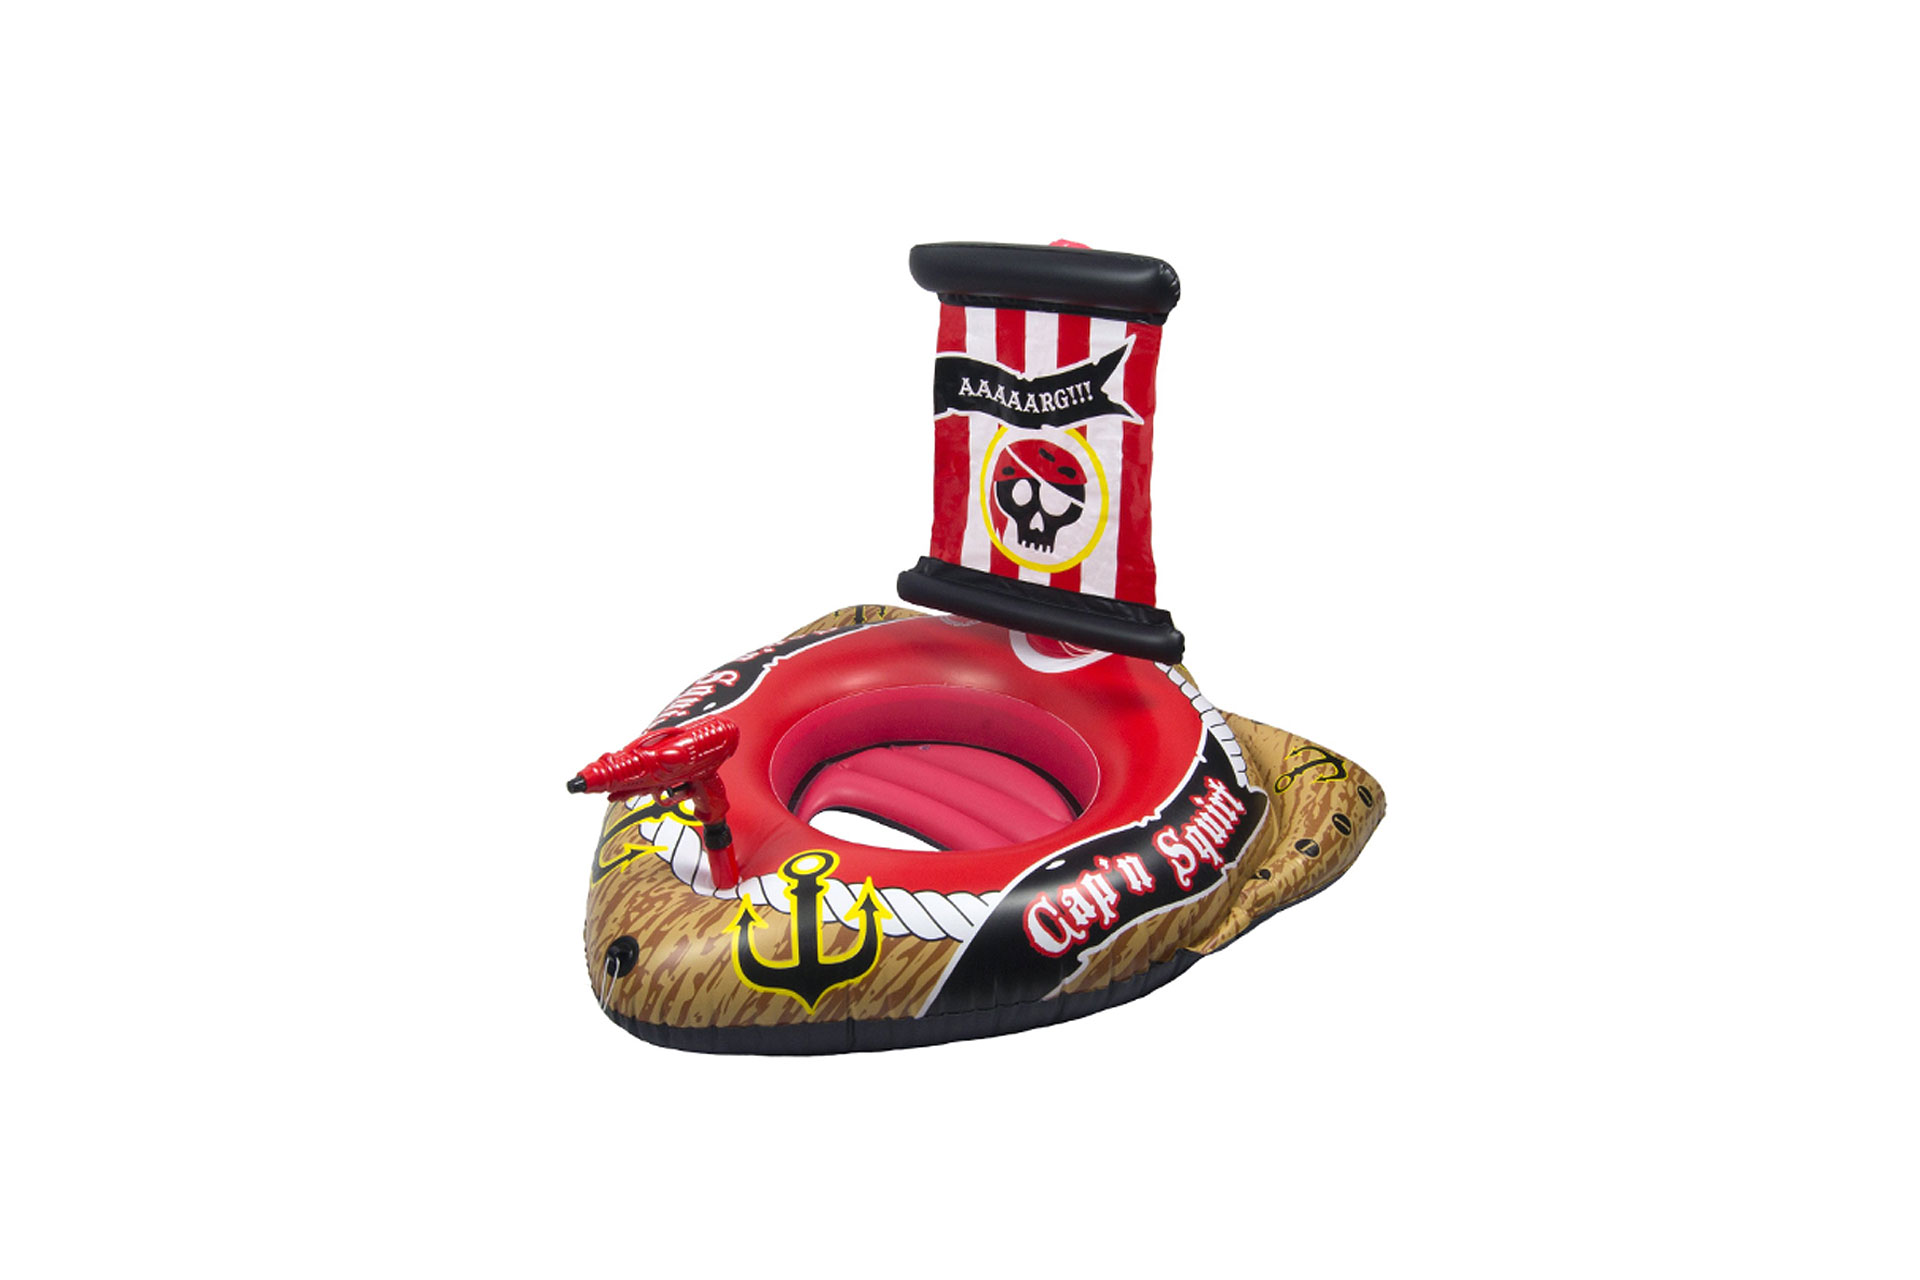 Poolmaster Pirate Ship with Action Squirter; Courtesy of Amazon